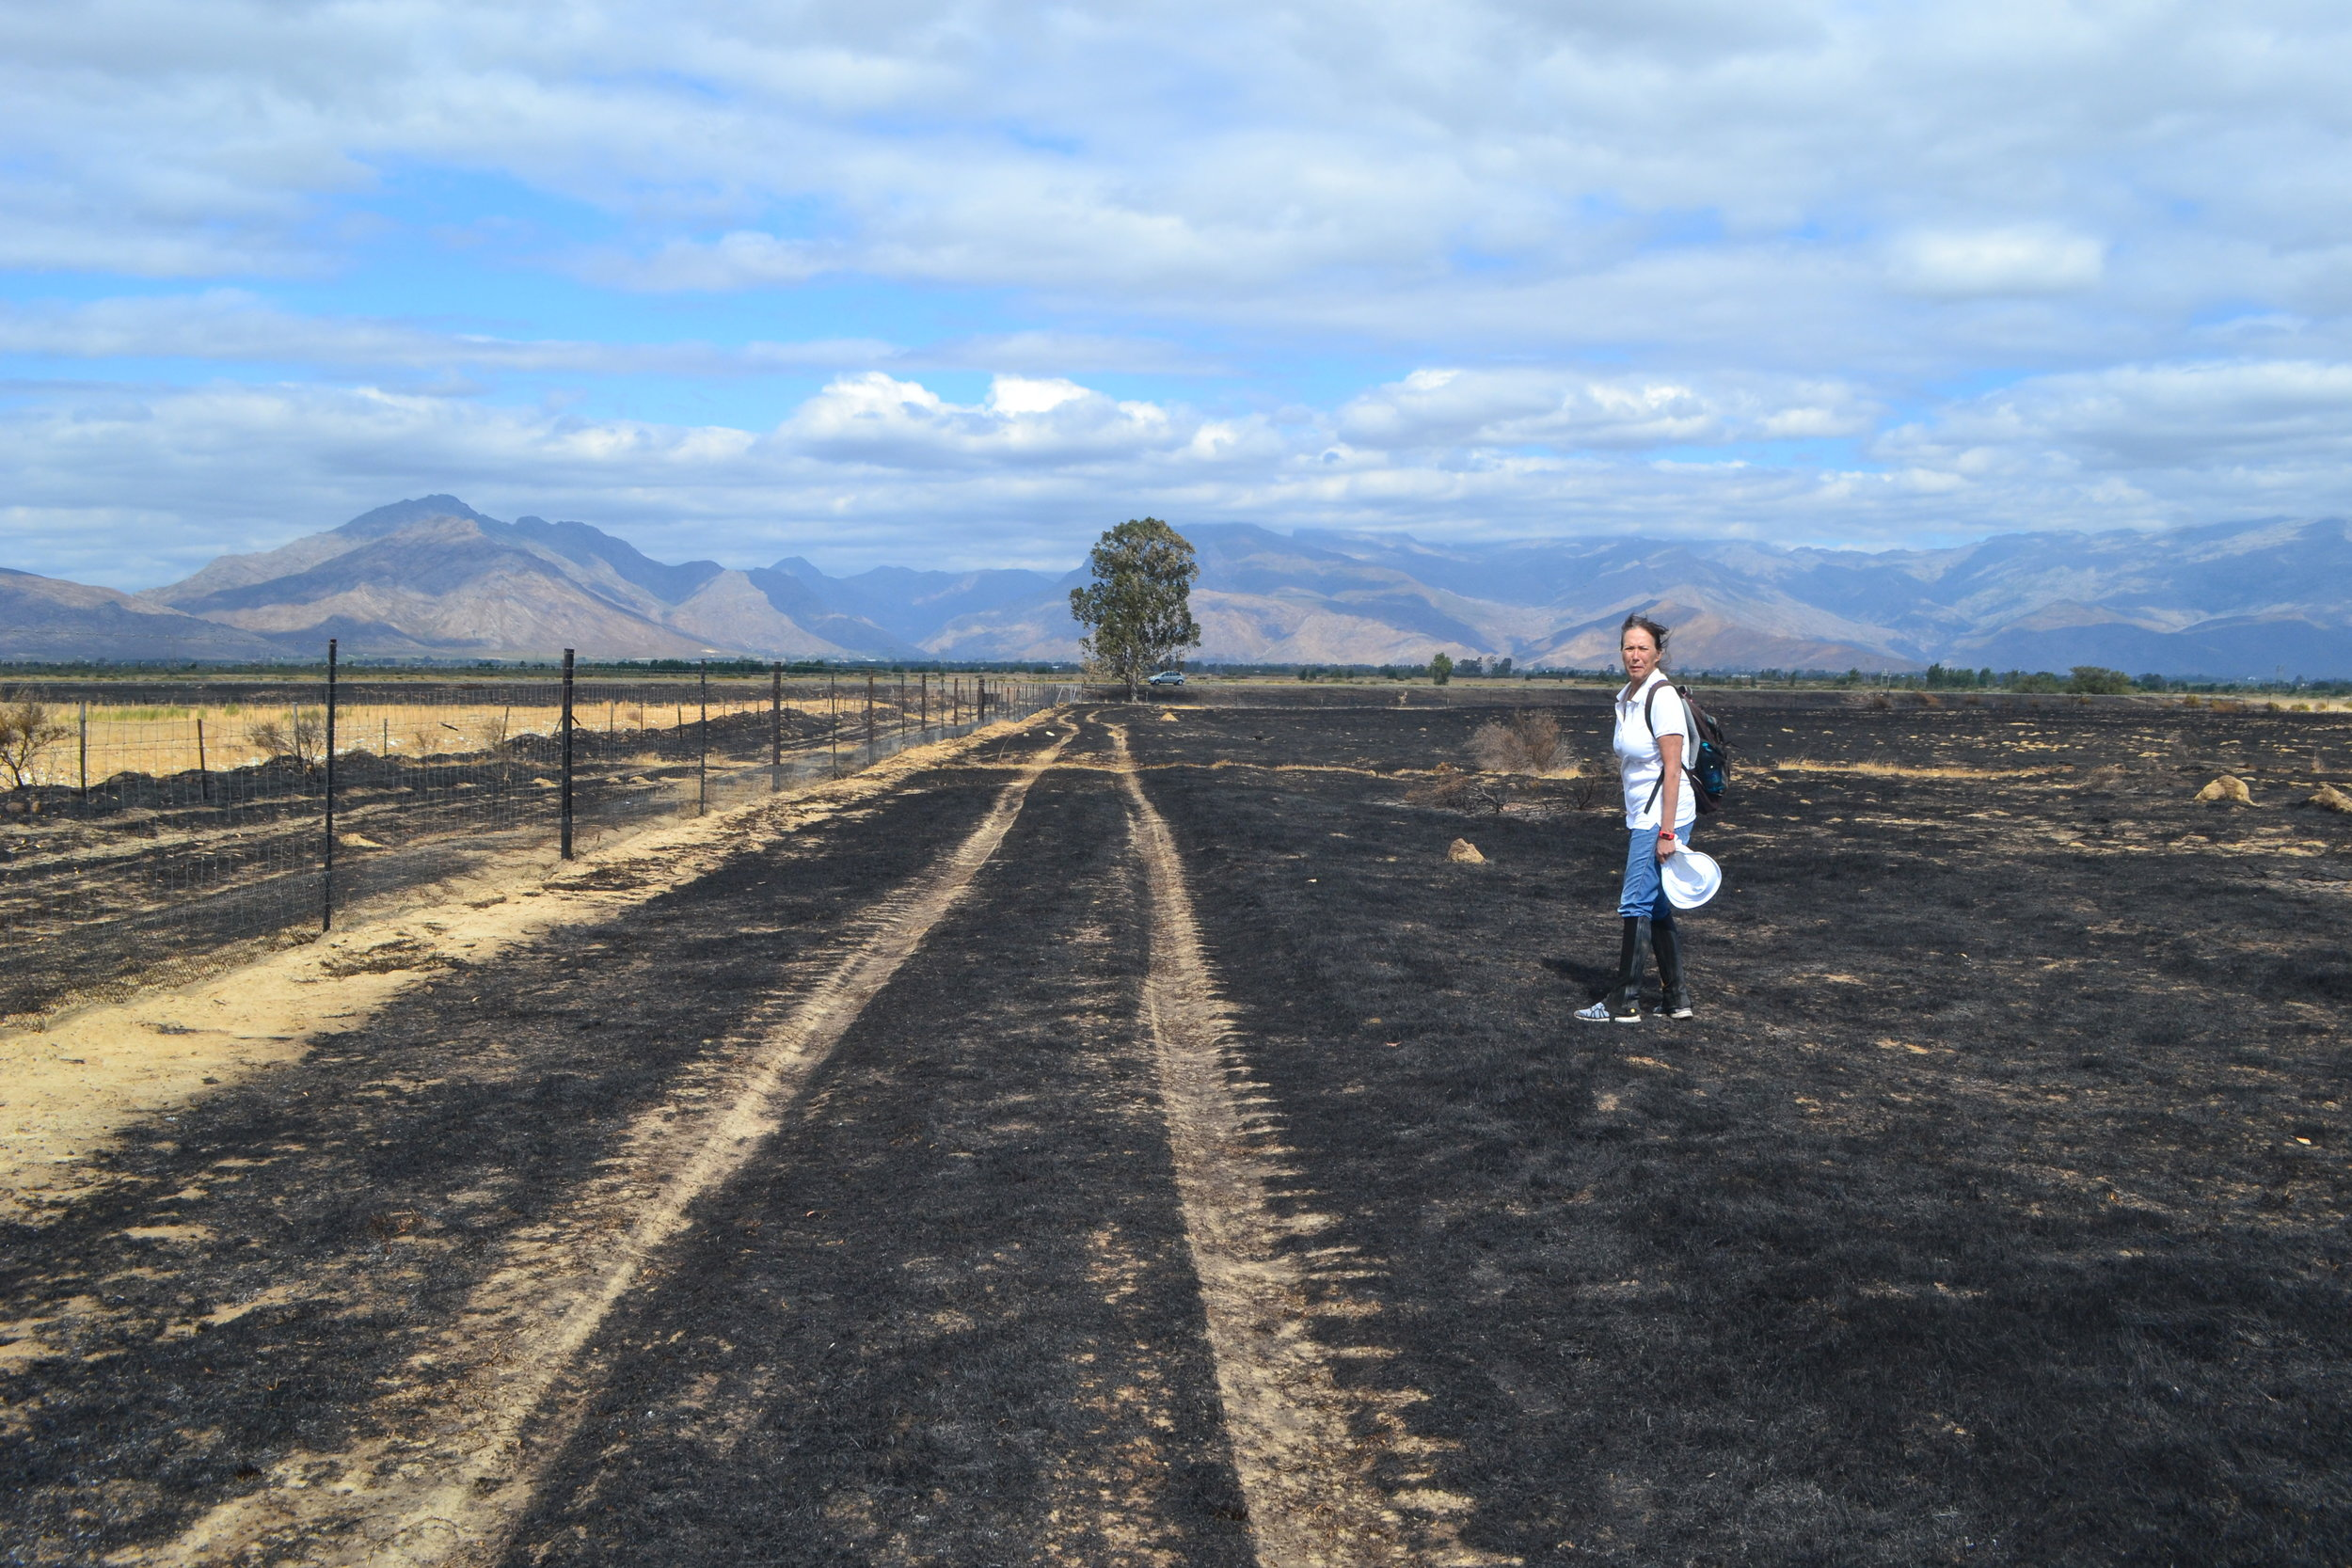 Prof. Hofmeyr on the burned area of the reserve April 7